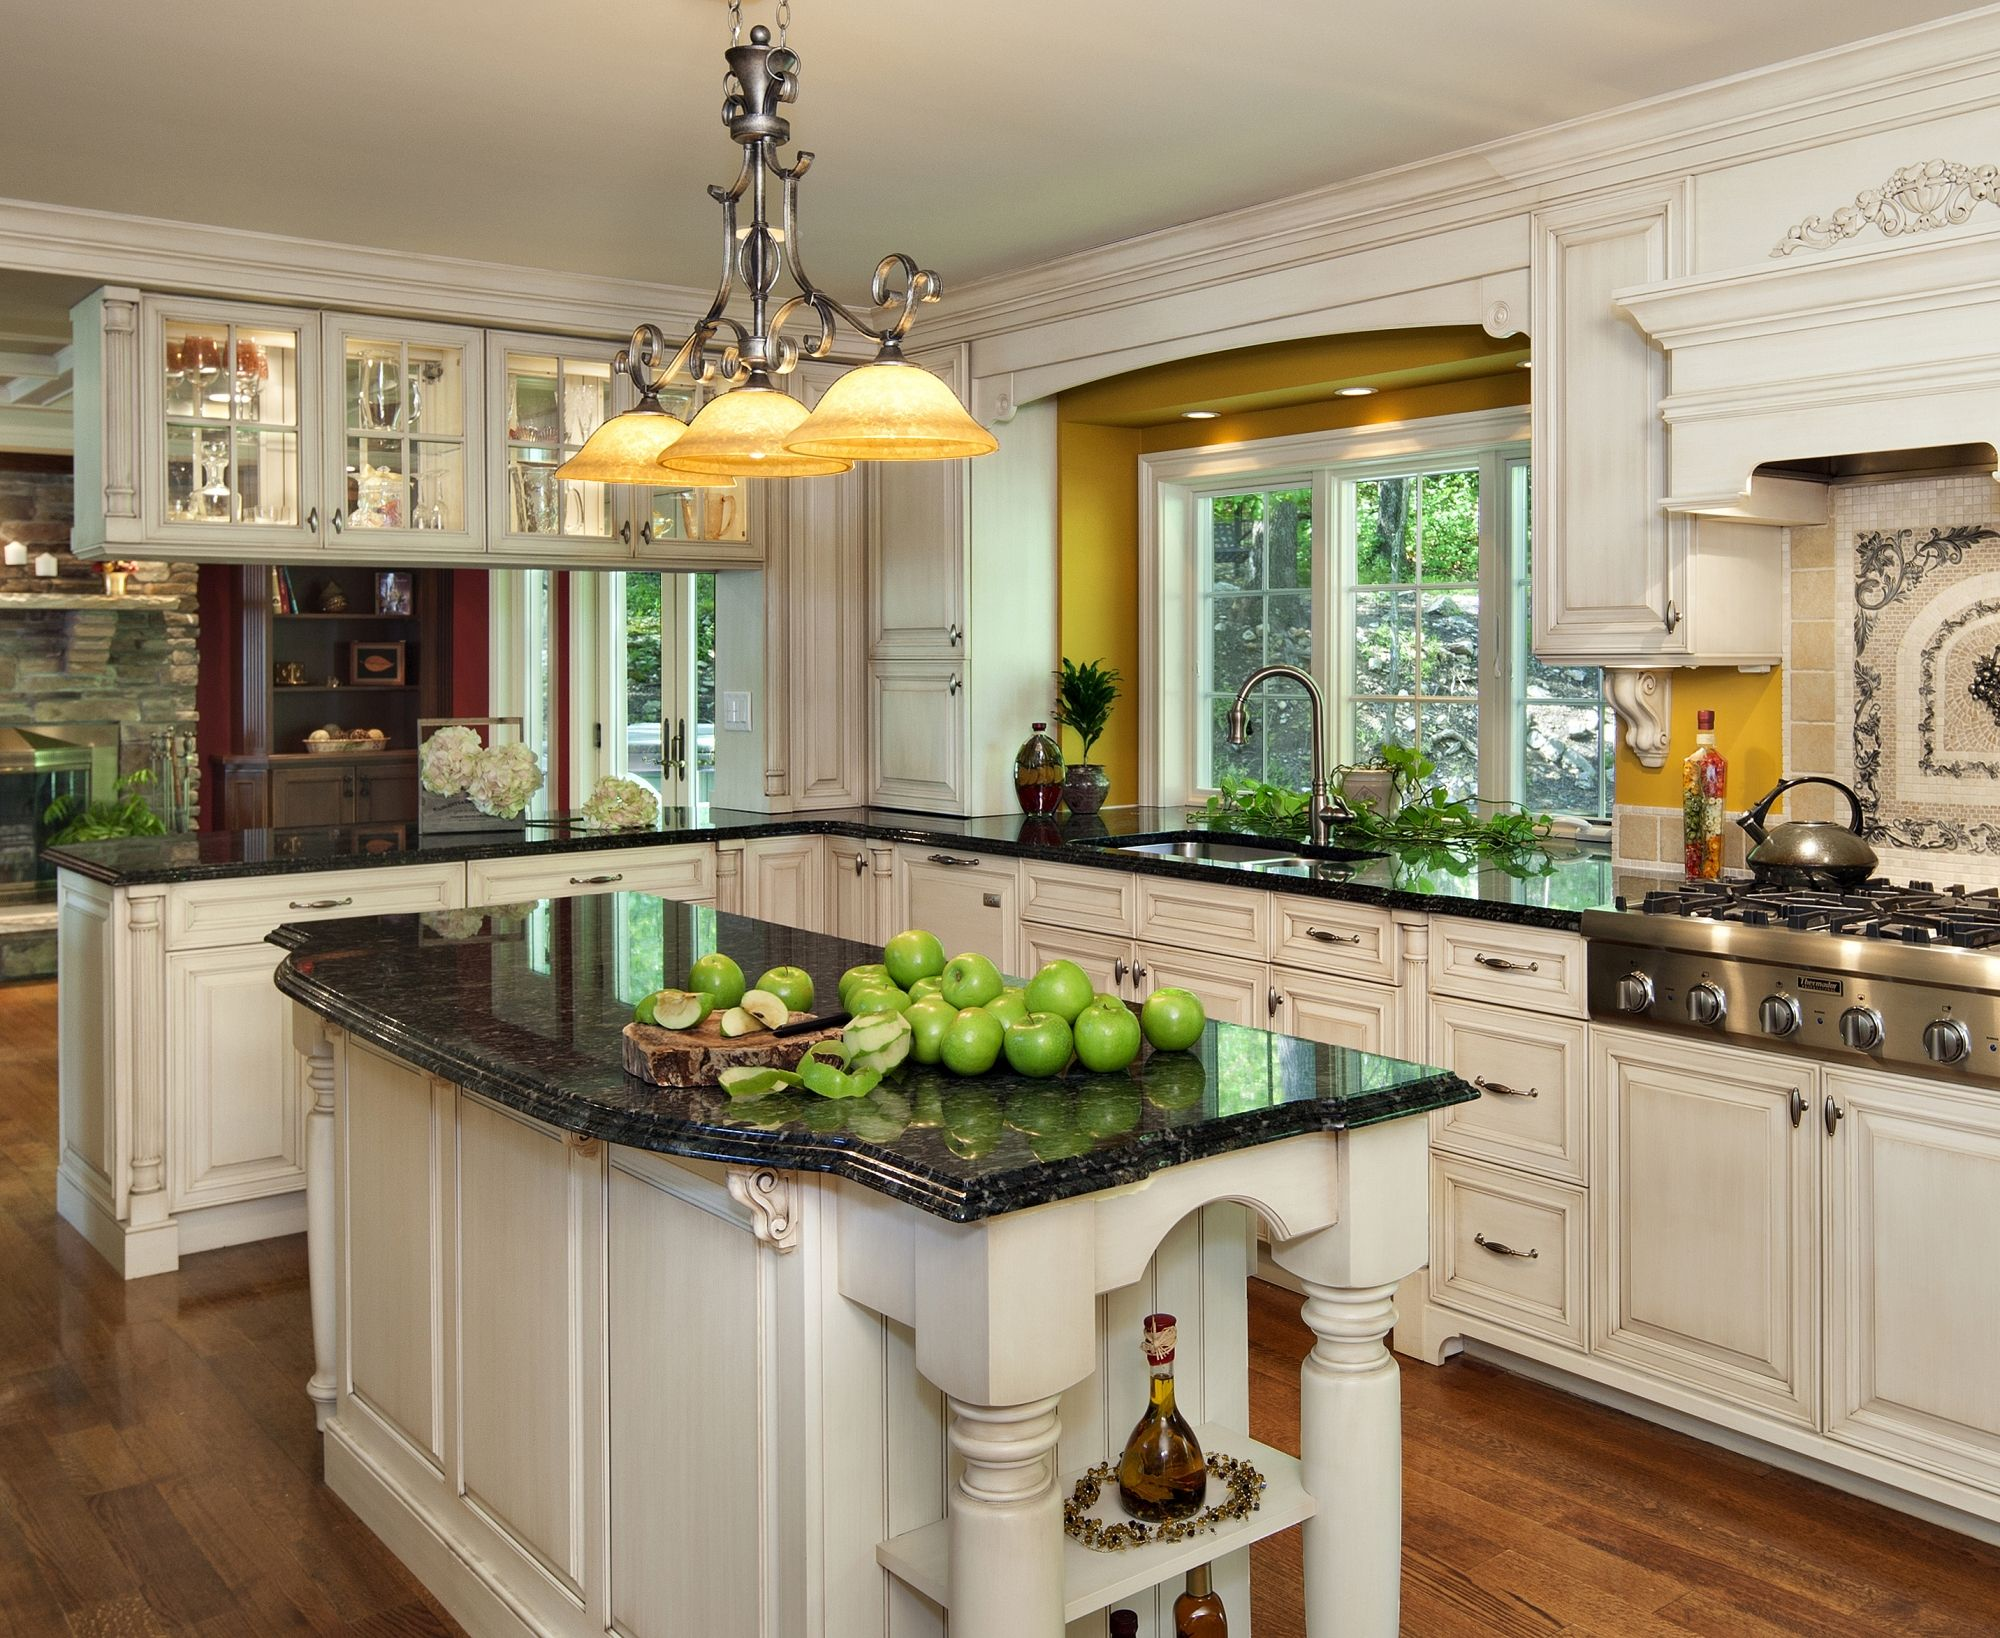 Kitchen Traditional White With Stunnidn Islands Black Granite Countertops And Yellow Pendant Lamp Design Inspiration